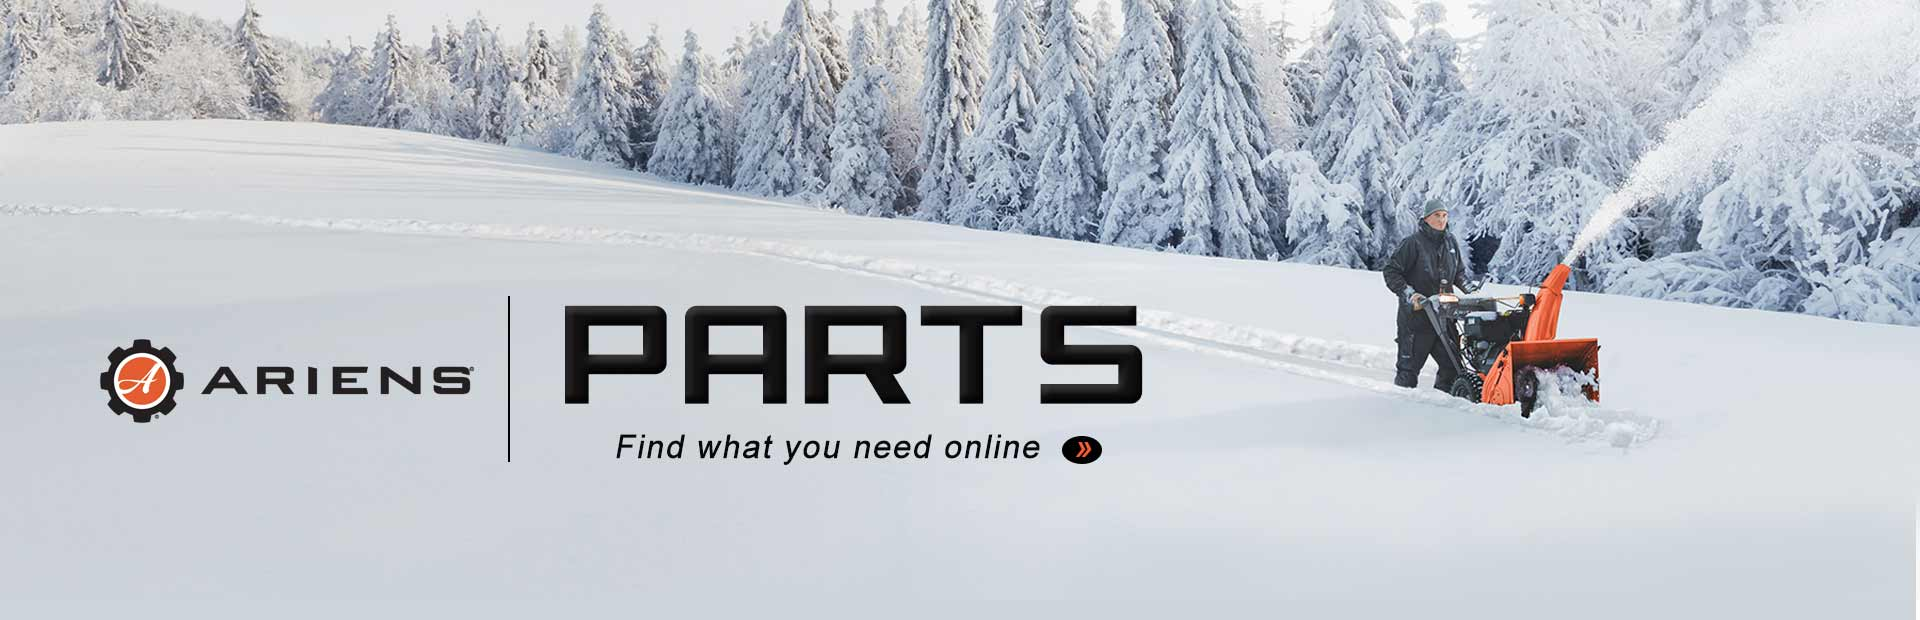 Ariens Parts: Click here to find what you need online.